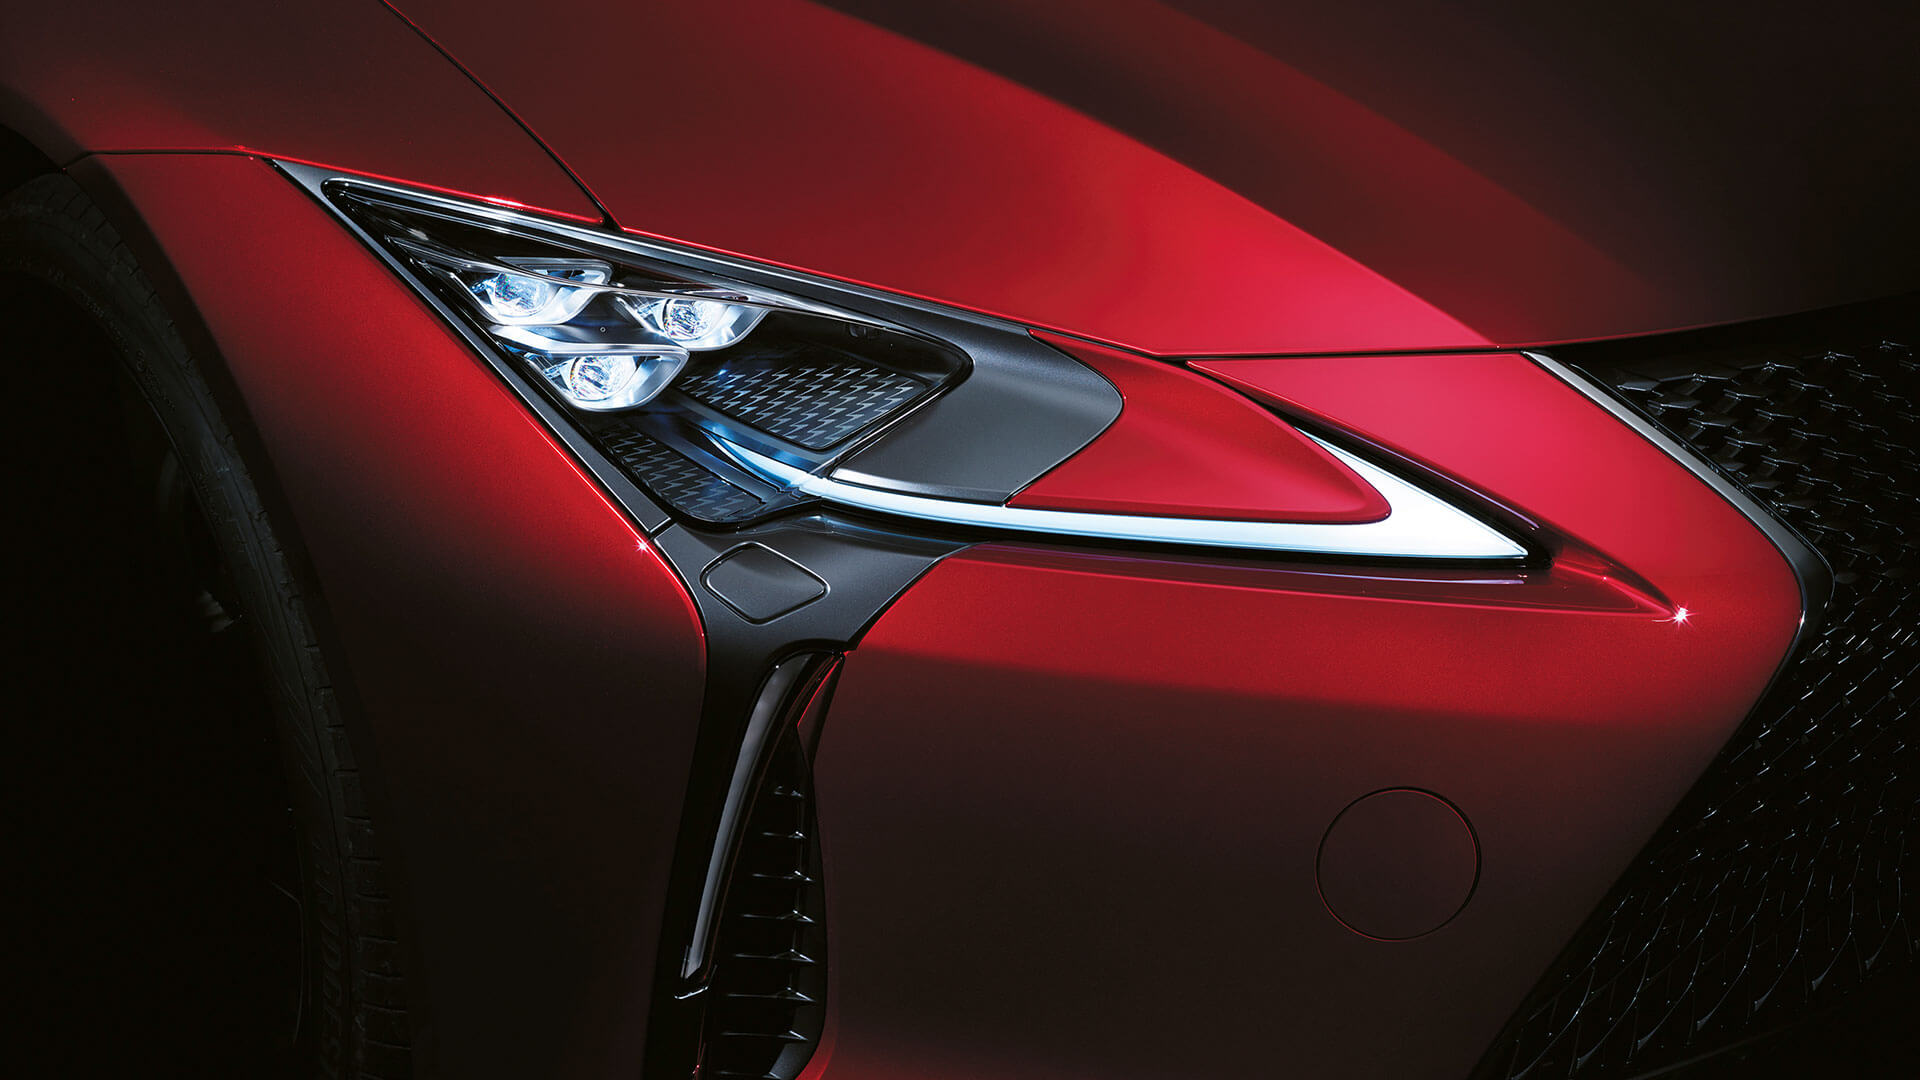 2017 lexus lc 500 features led headlights